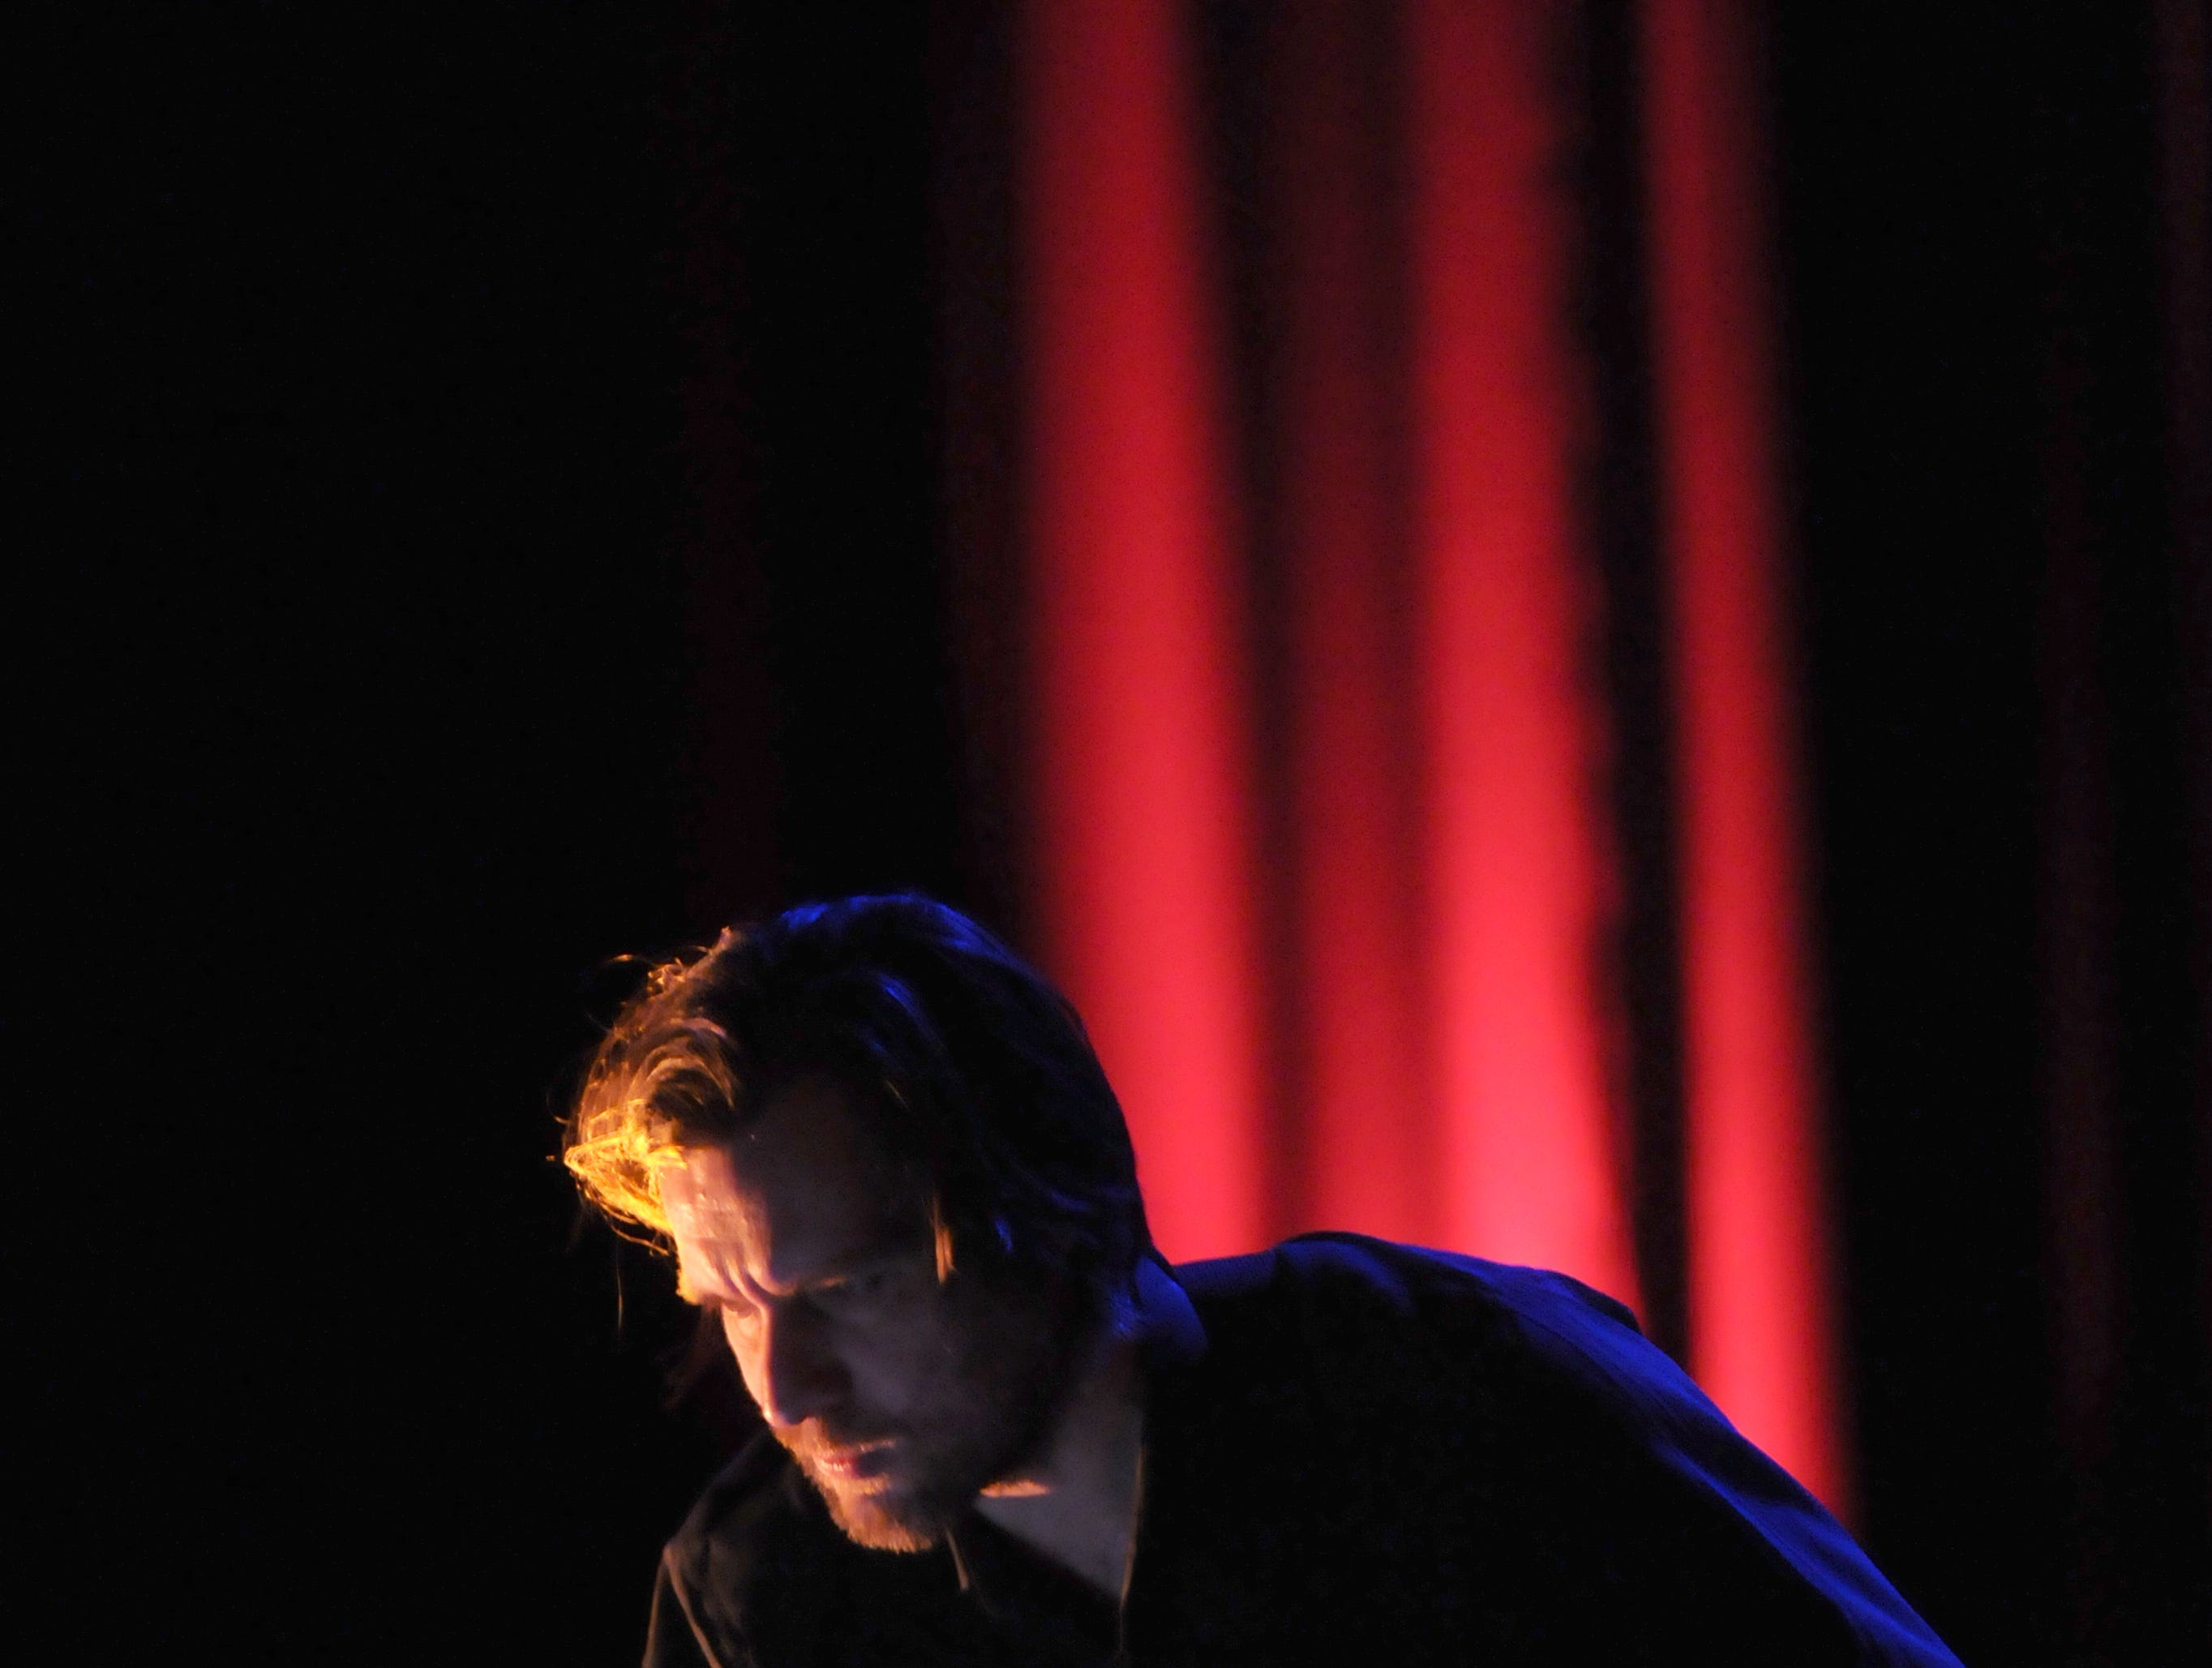 Austrian-based musician Christian Fennesz (CQ) performs with computer and guitar during the Big Ears festival on Friday, Feb. 6, 2009 at the Bijou Theatre. His critically-acclaimed album Black Sea is a showcase of dark experimental electronic music.